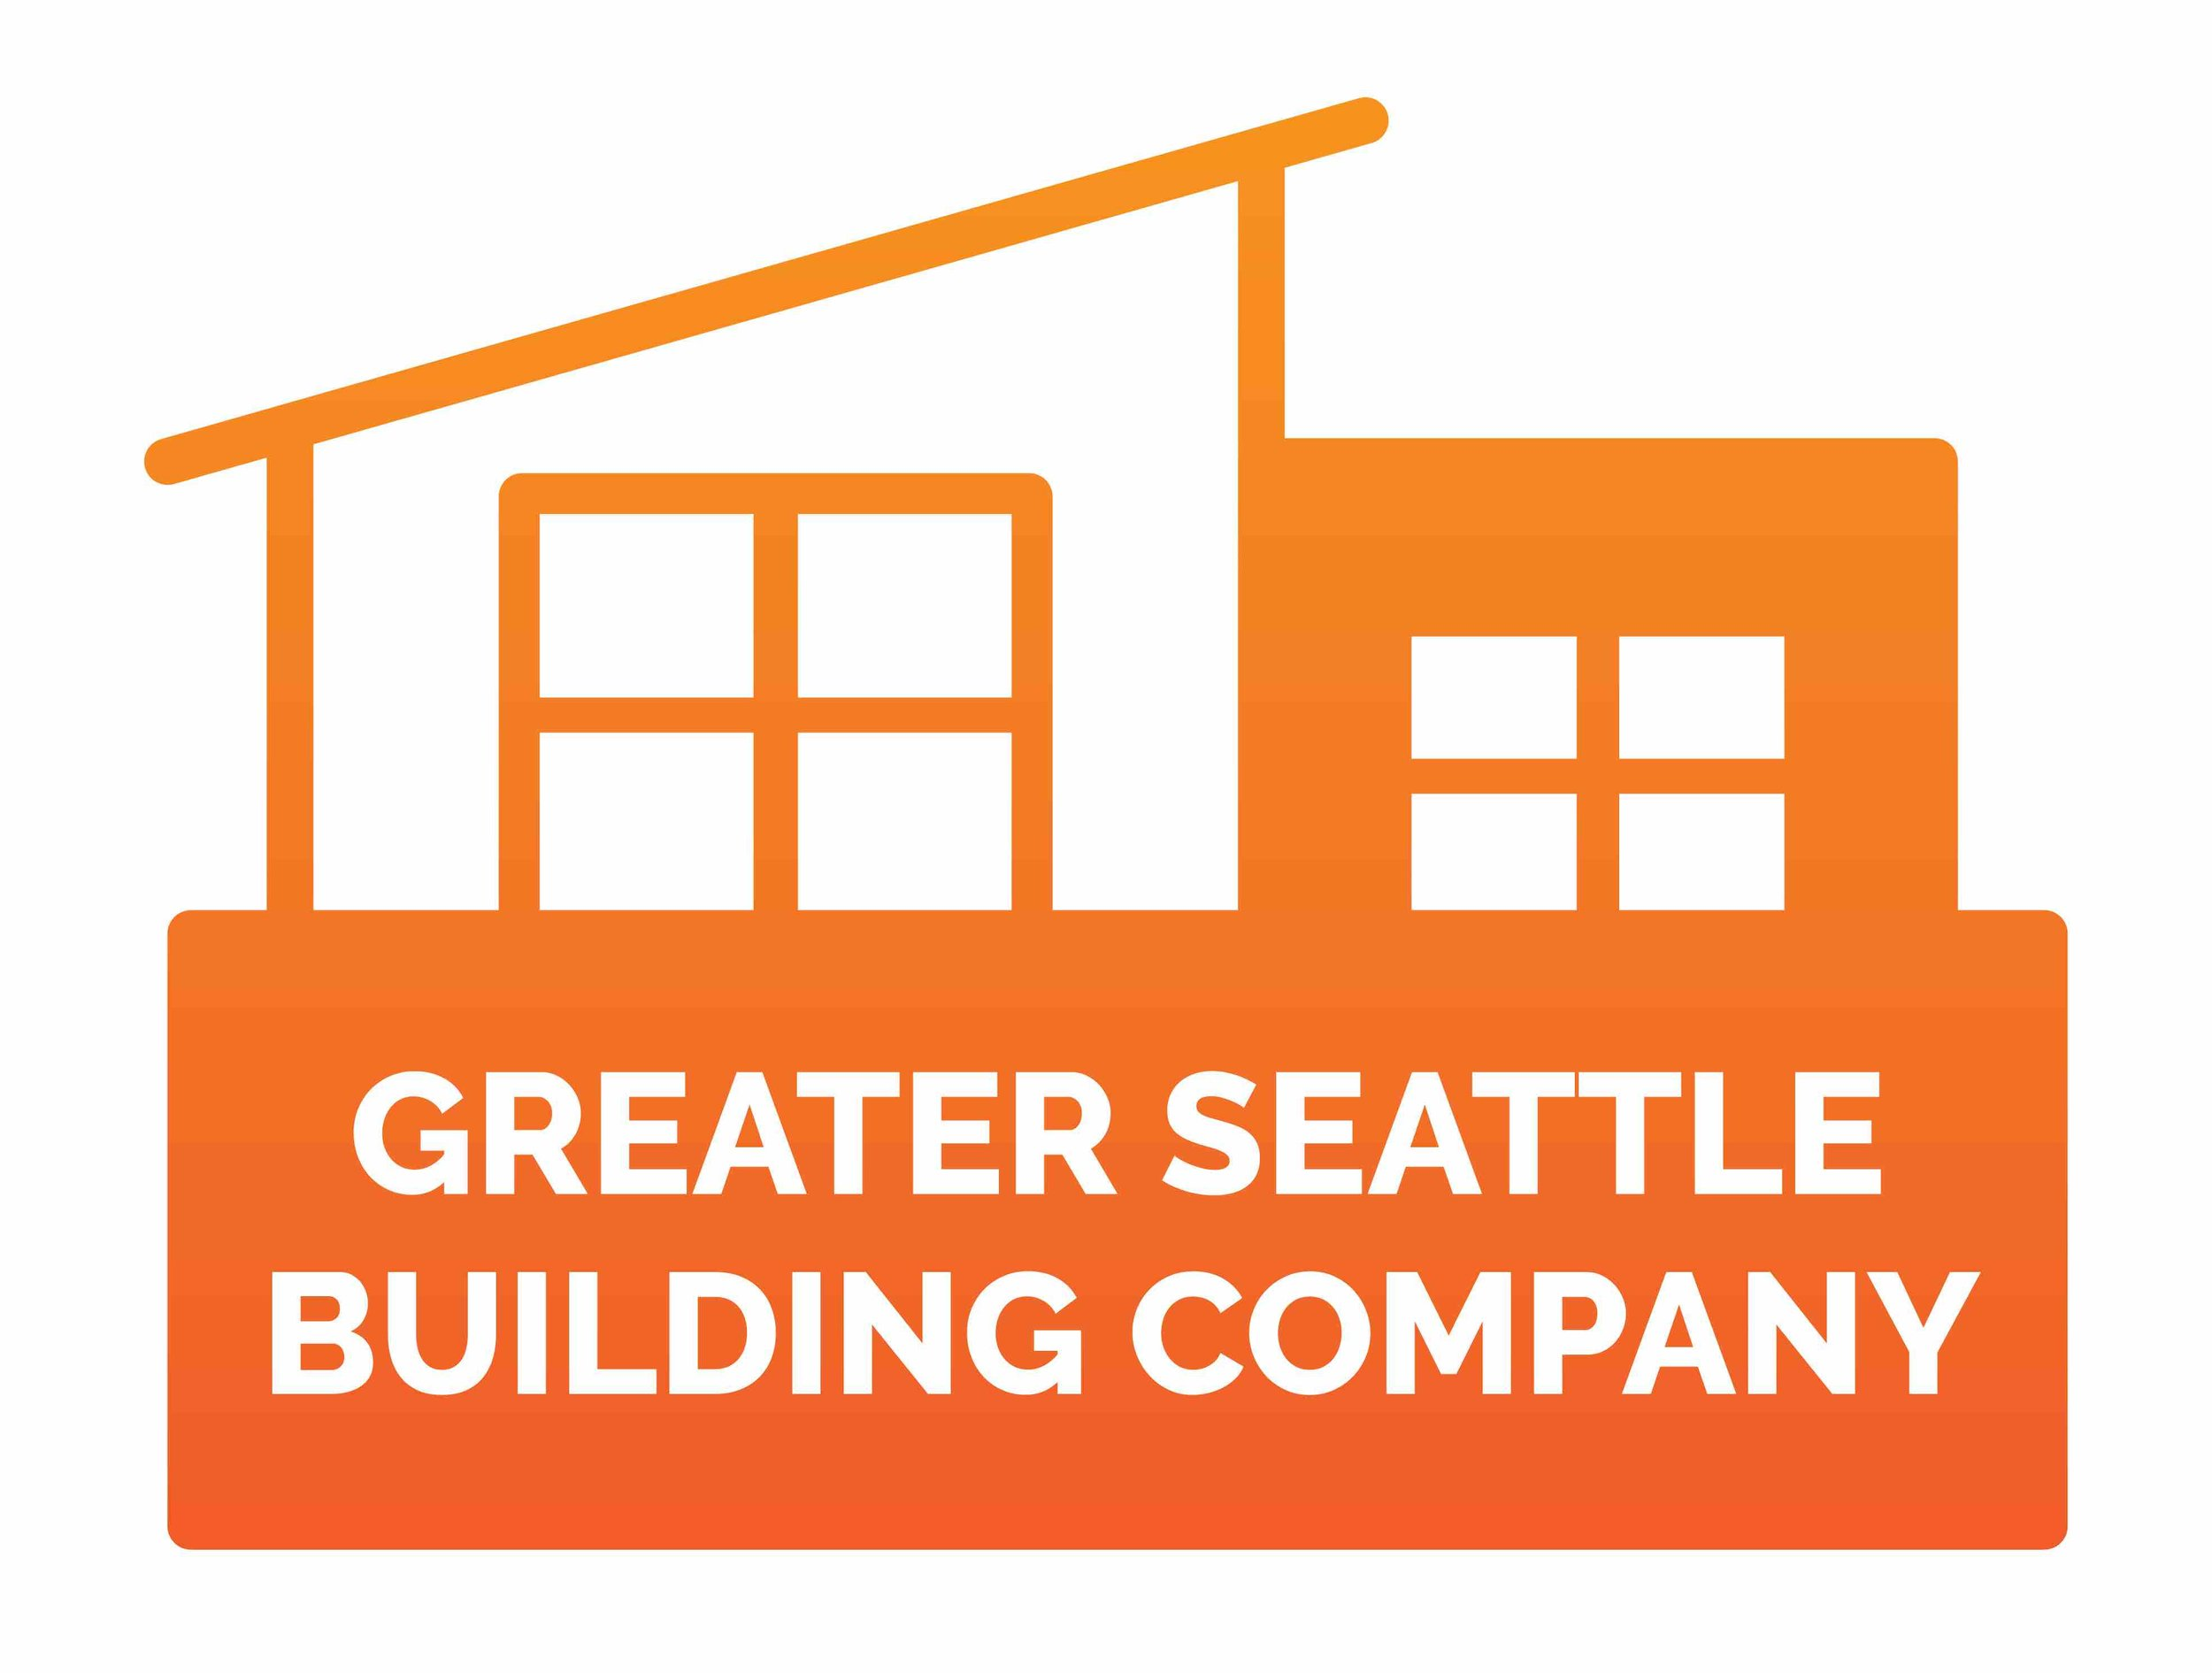 About-Greater-Seattle-Building-Company